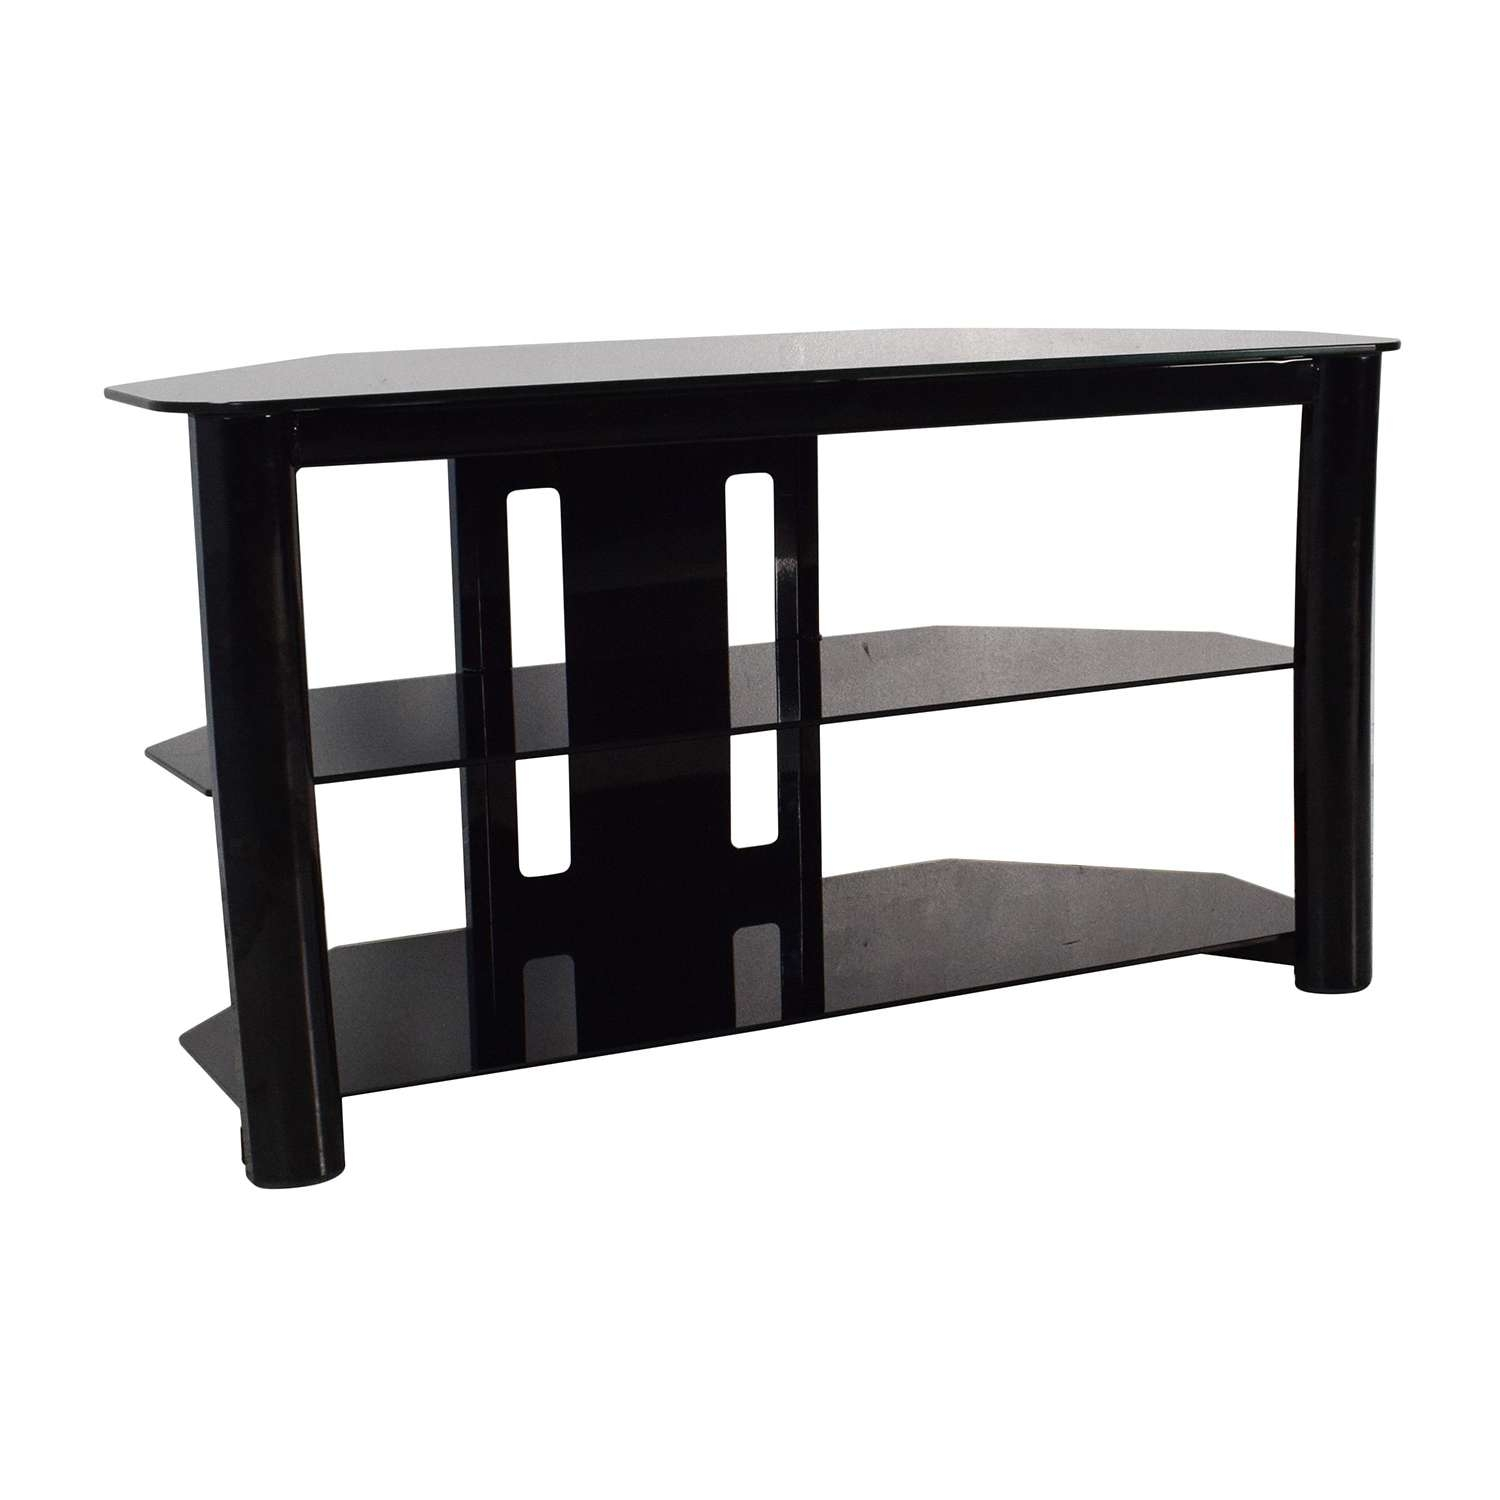 61% Off – Best Buy Best Buy Black Glass Tv Stand / Storage With Regard To Black Glass Tv Cabinets (View 2 of 20)